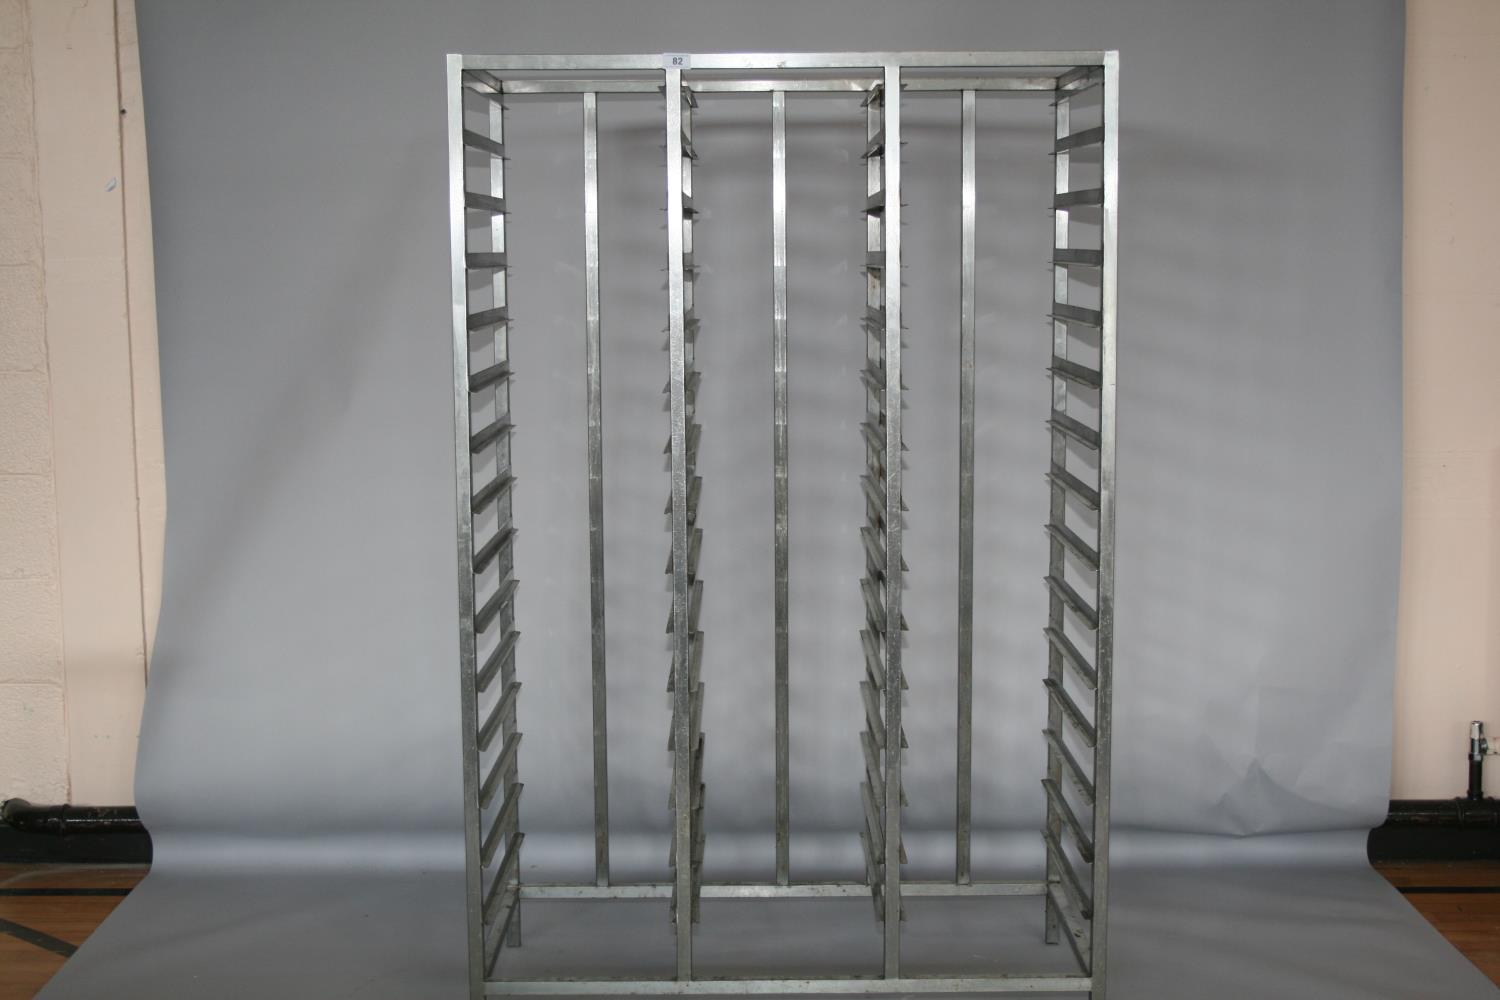 Stainless steel banqueting tray holder 110 W x 170 H x 56 D